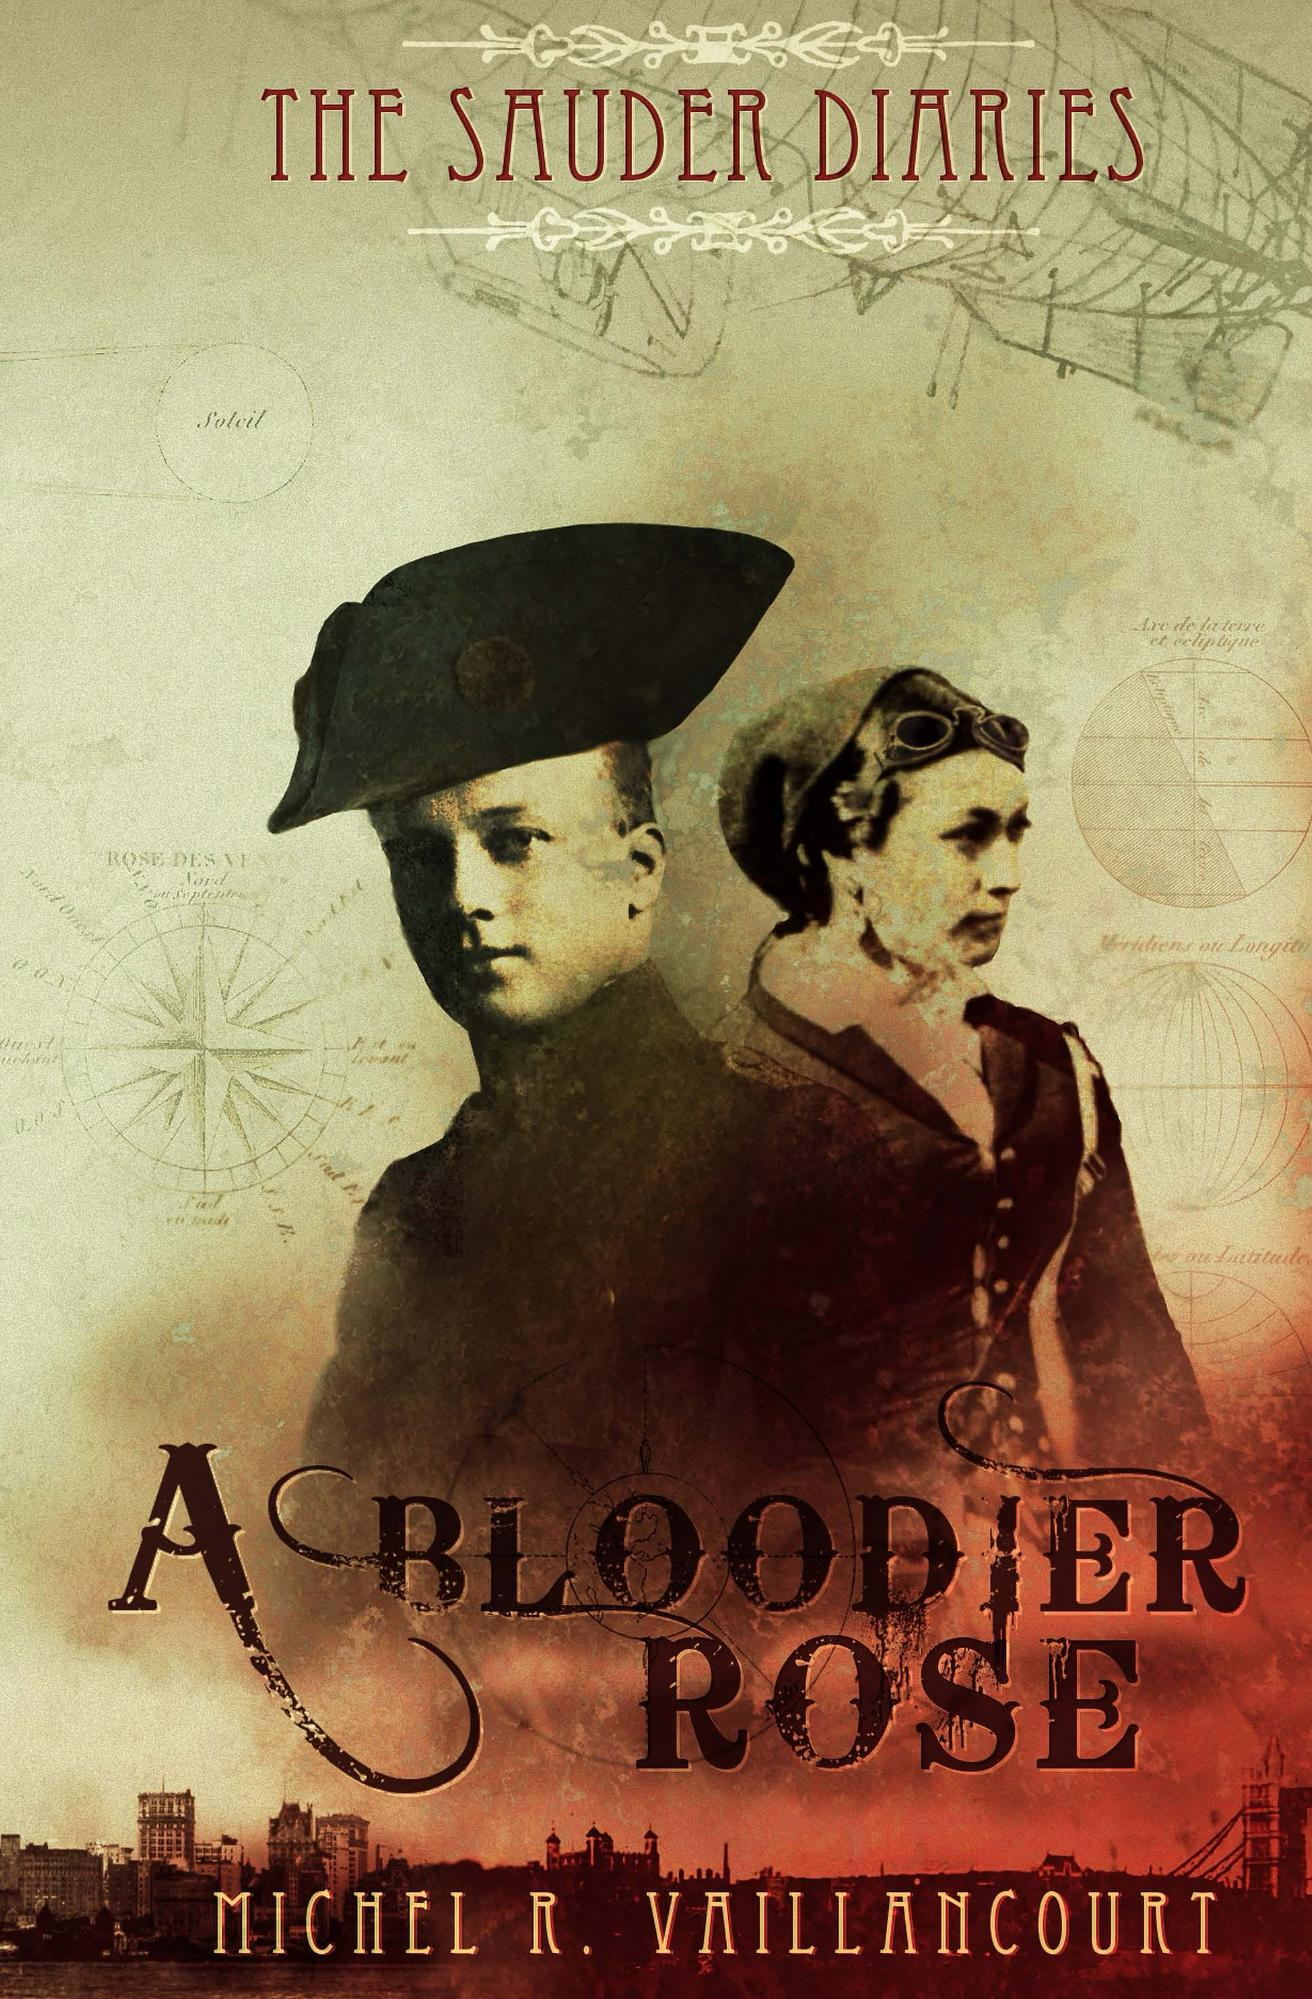 """The Sauder Diaries - """"A Bloodier Rose"""" Kindle Release Cover"""